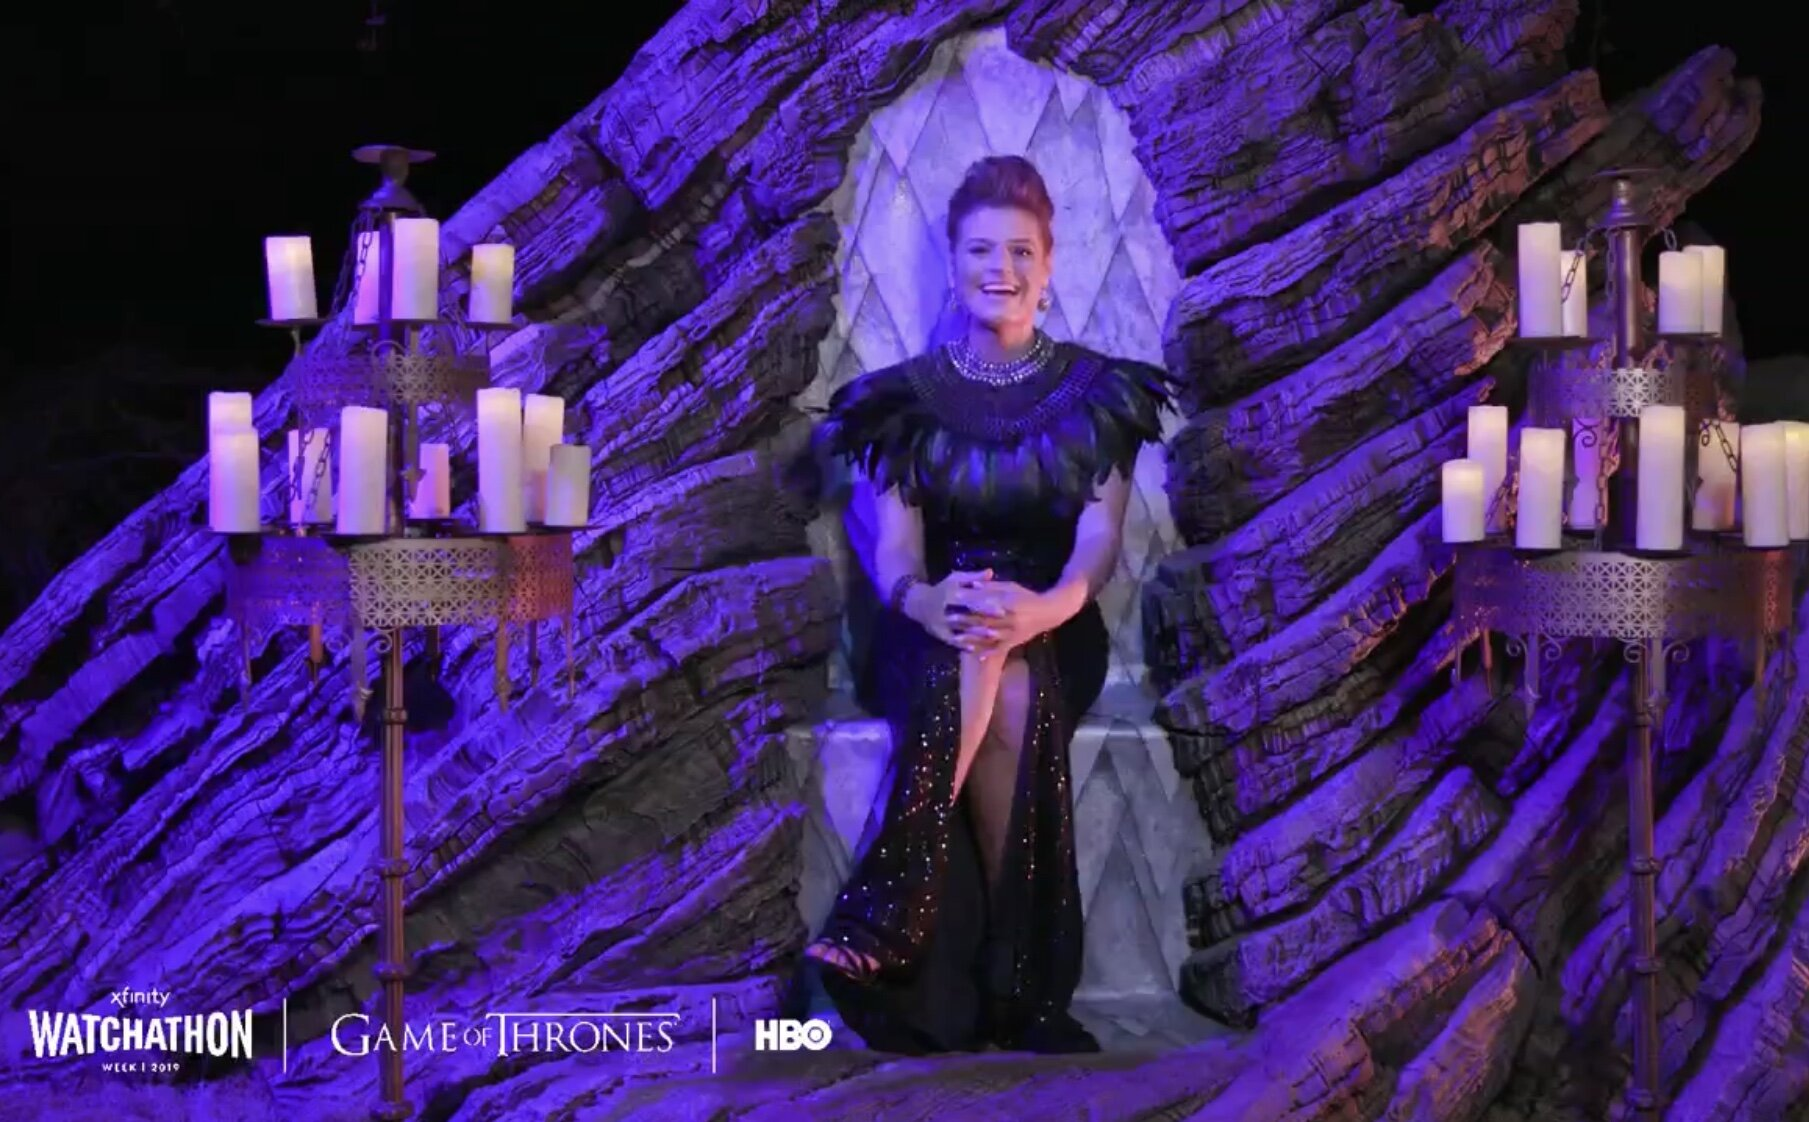 Xfinity Watchathon Game of Thrones Premier that had over 7million view.